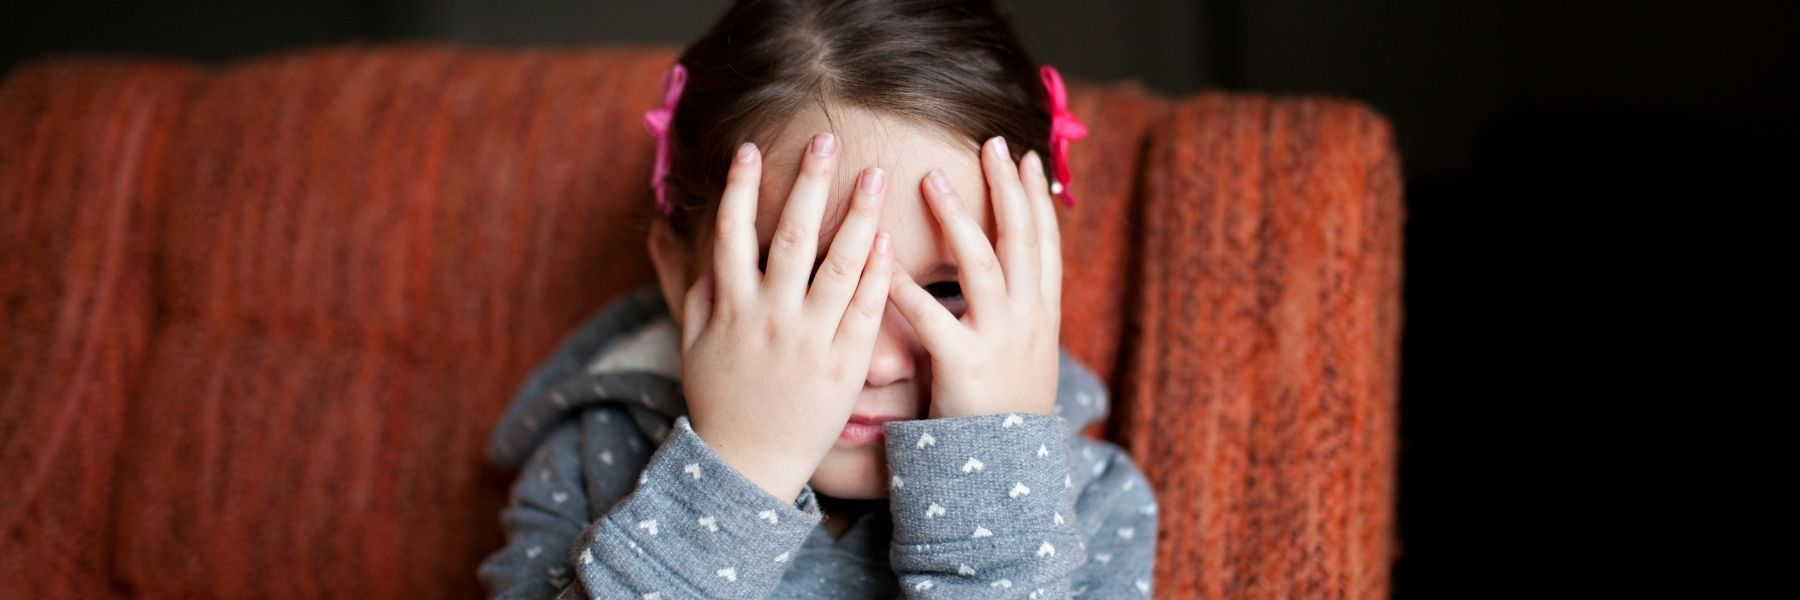 Embarrassed young girl hiding her eyes